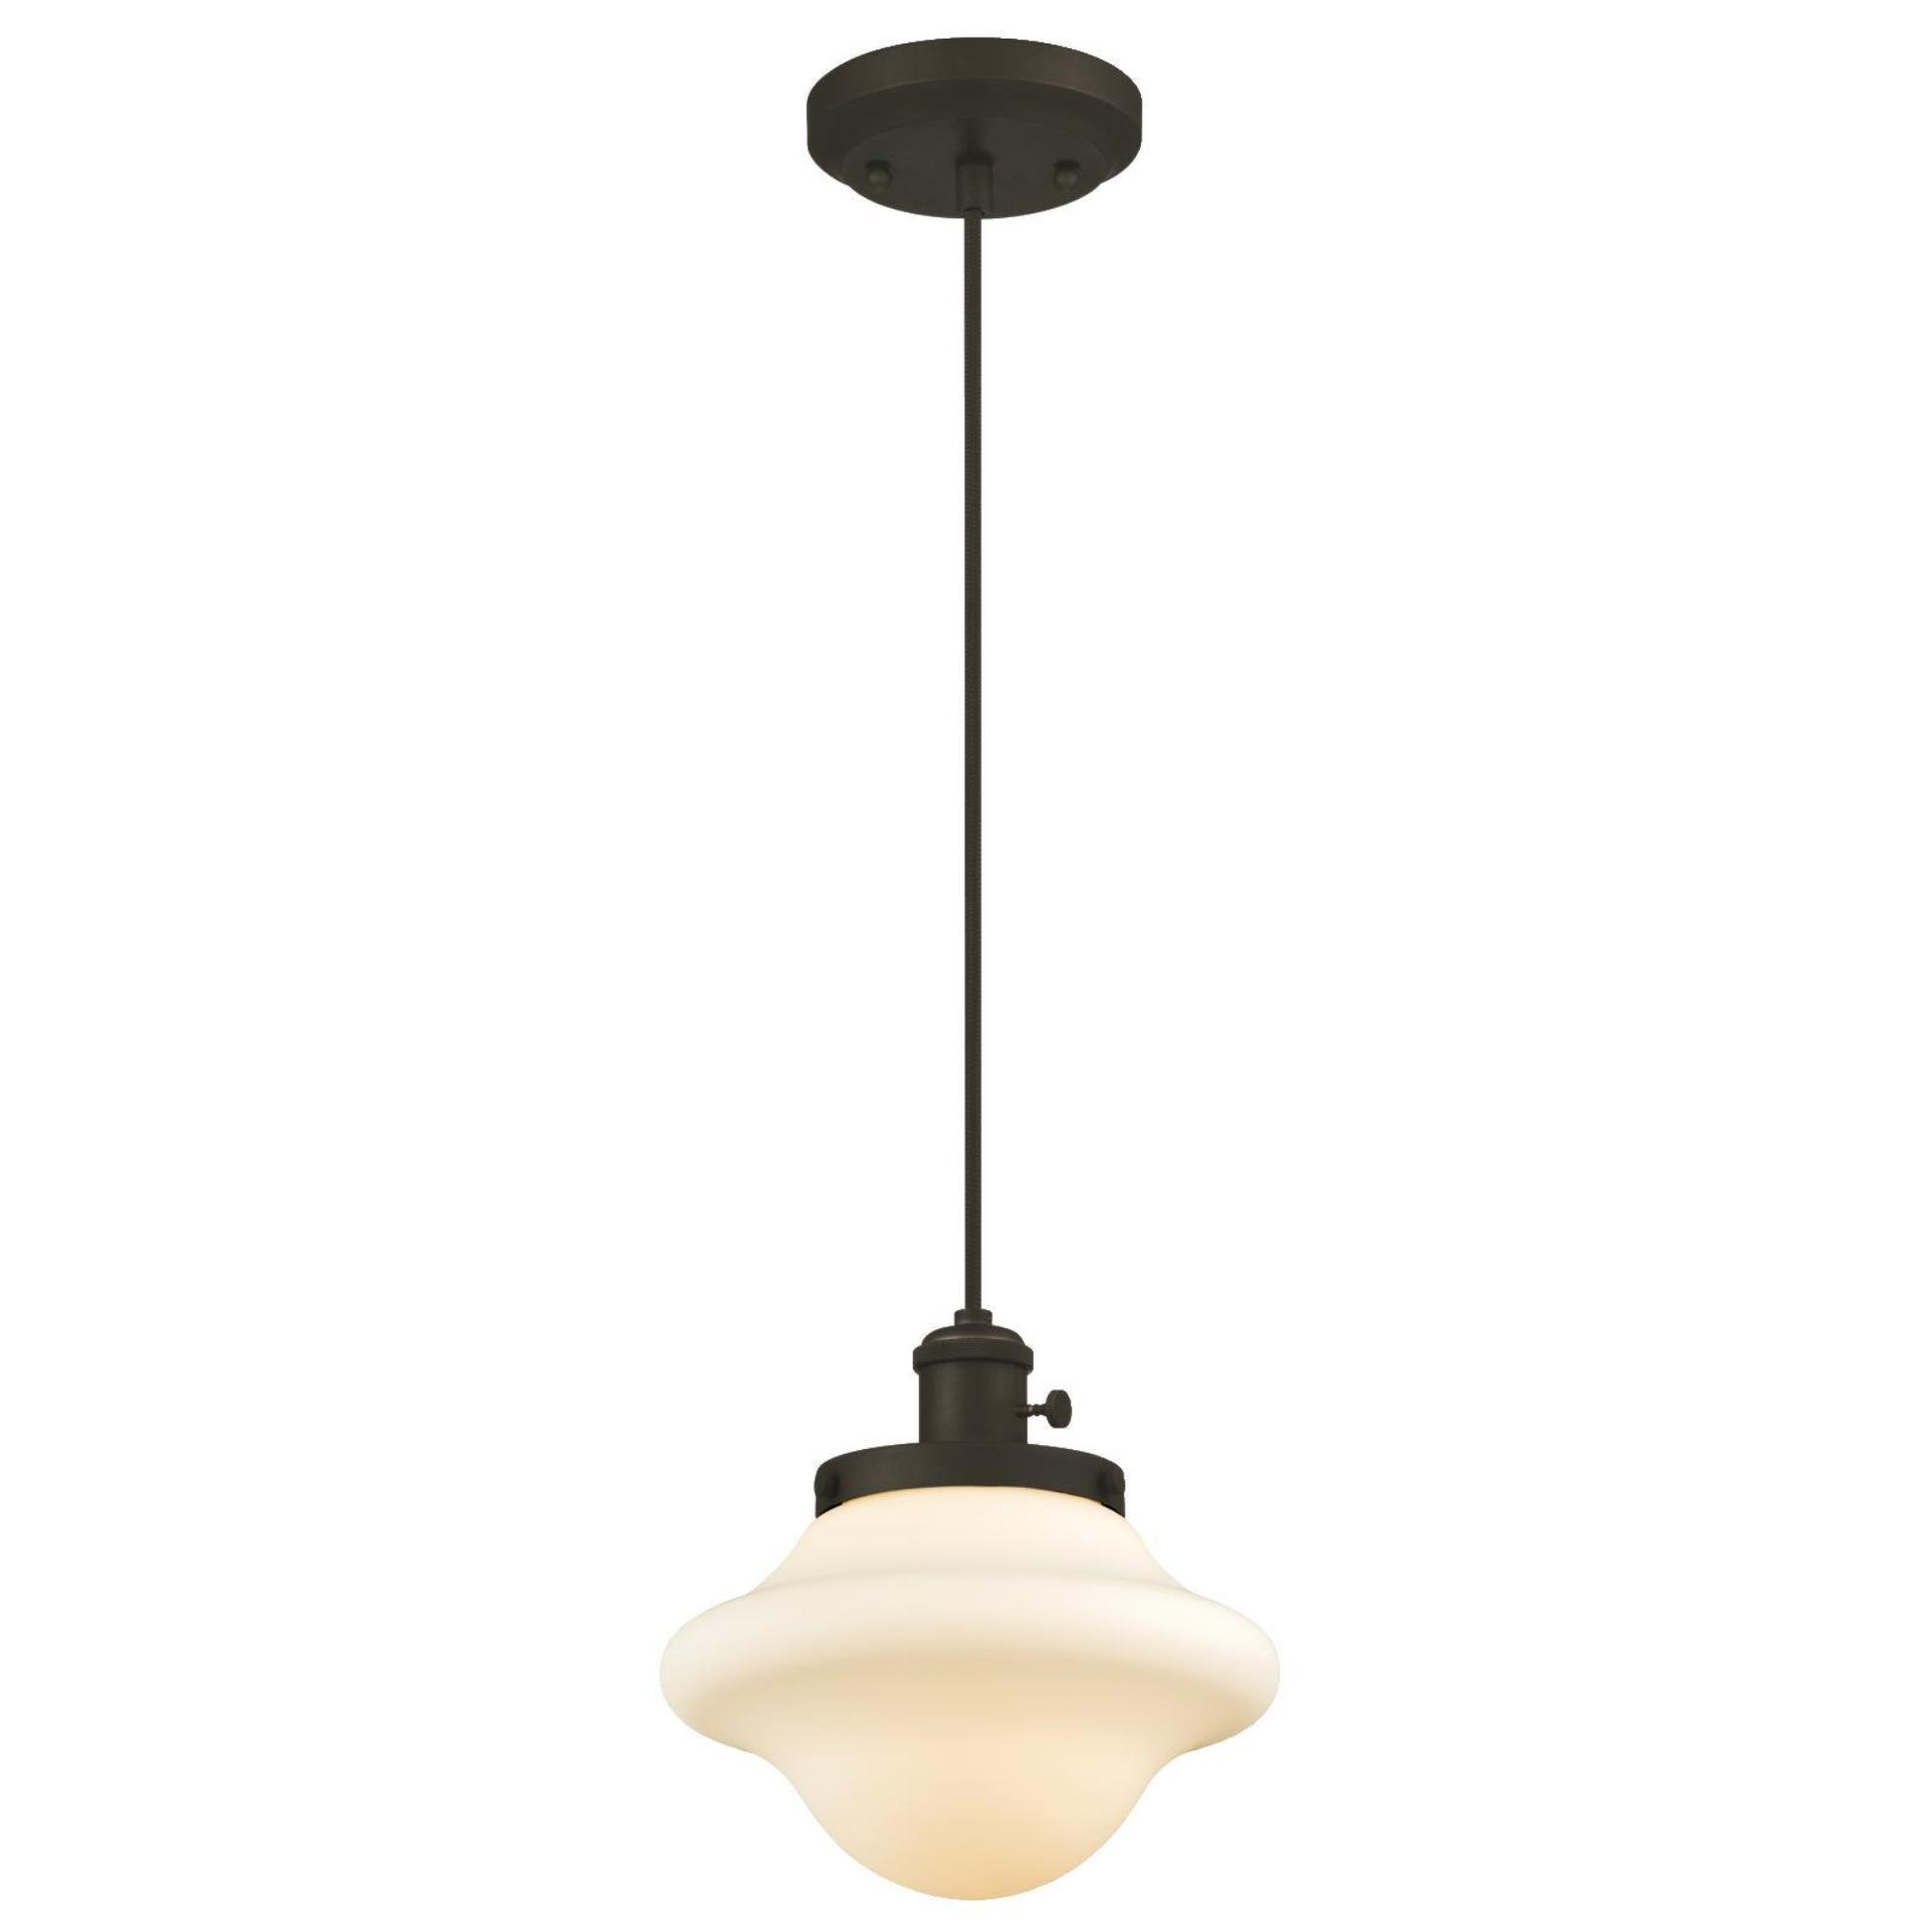 Westinghouse 6346500 One-Light Mini Pendant with Frosted Opal Glass, Oil Rubbed Bronze